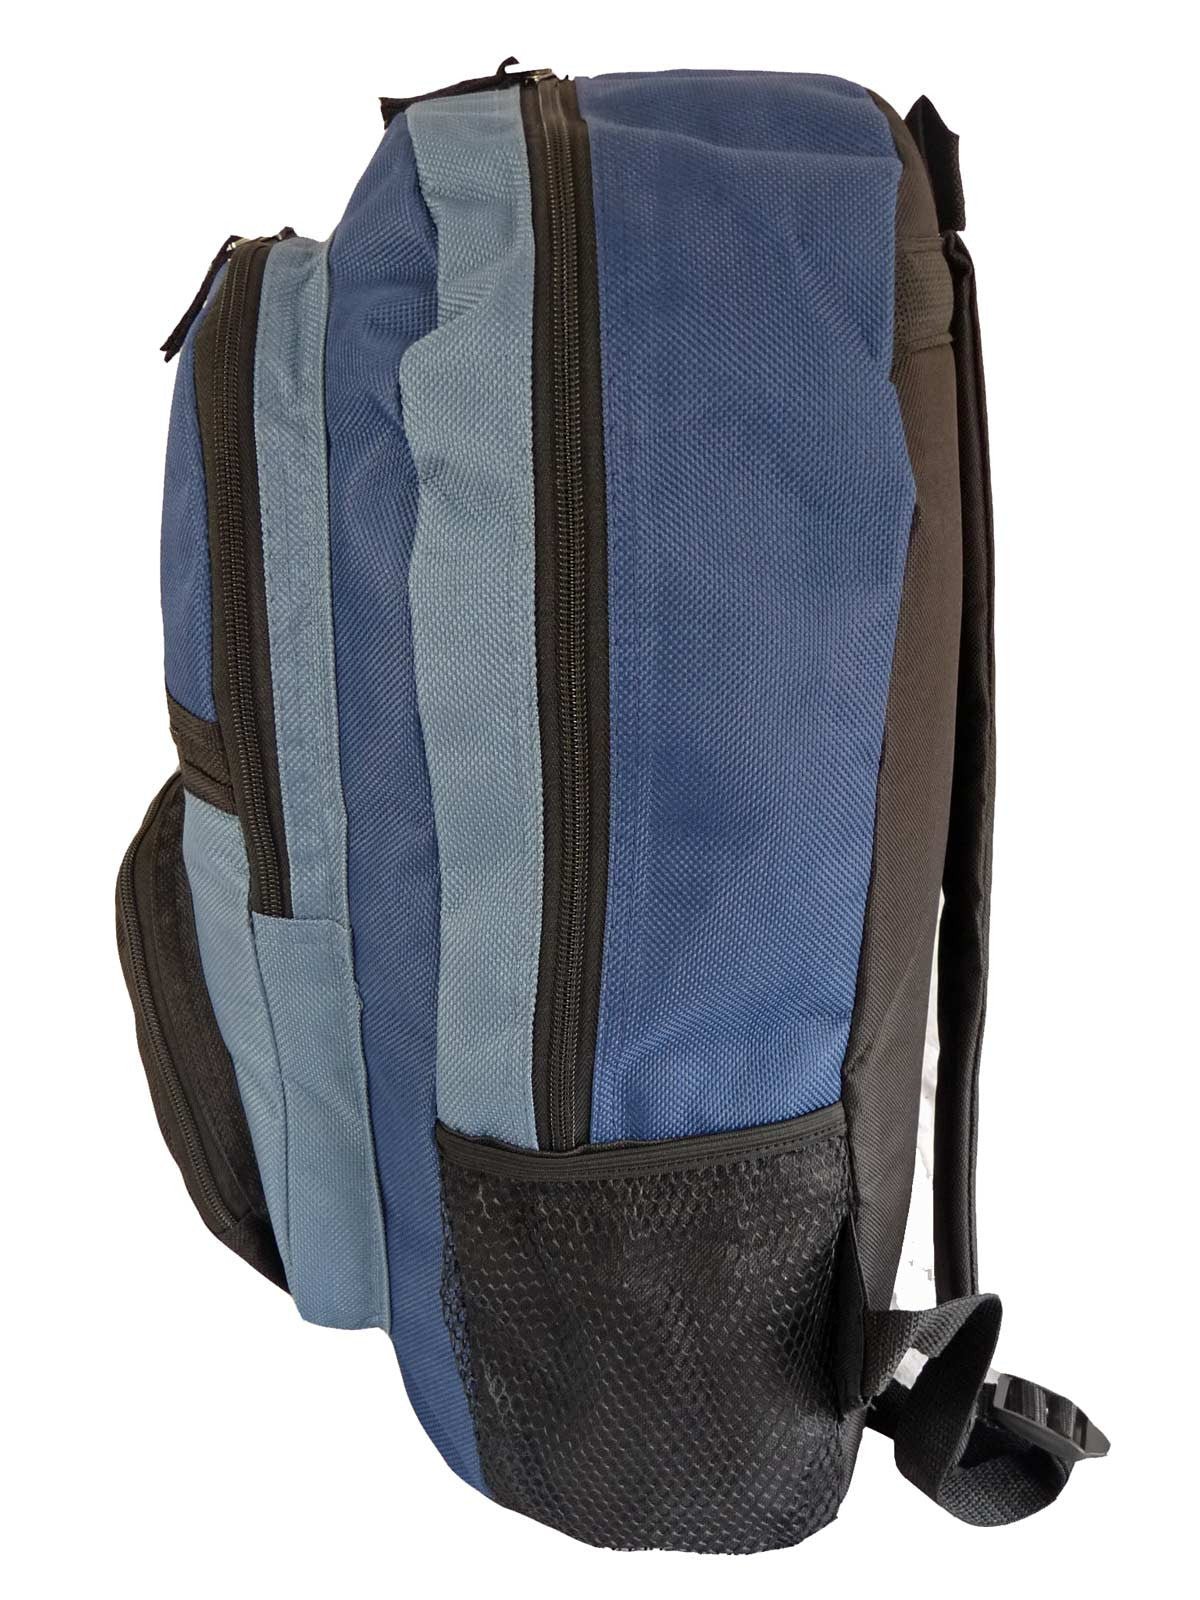 Kids School Bags RL37M Dark Blue S Side View